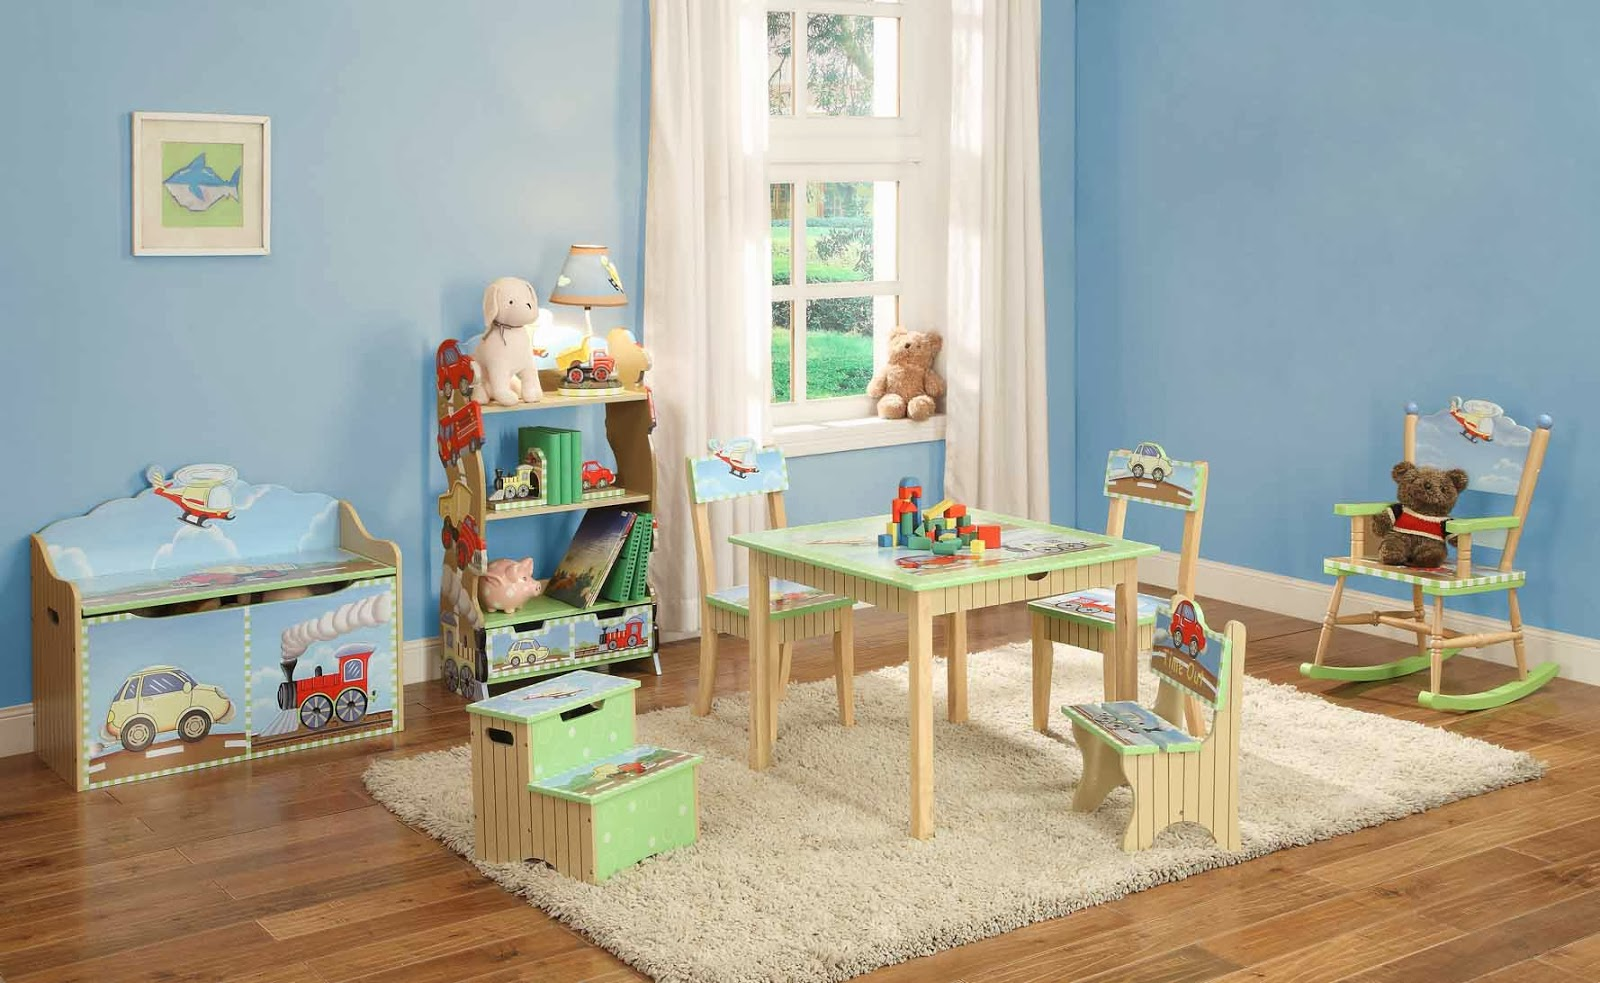 Children\'s Wooden Toys Toy Play Kitchen Furniture Dollhouse KidKraft ...